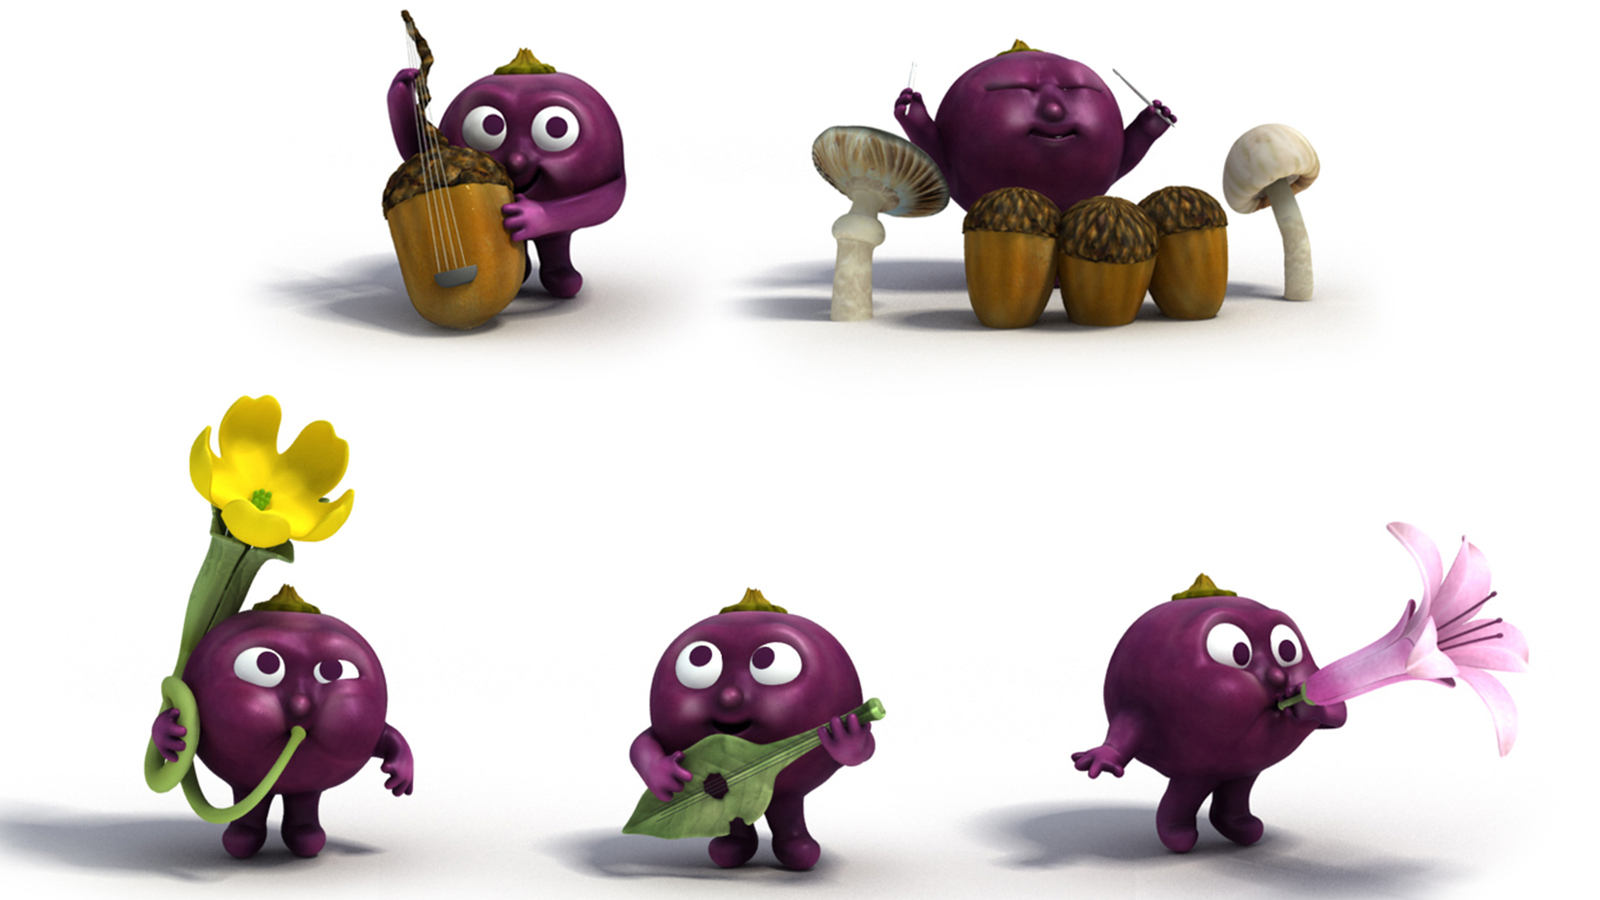 Ribena berries rendered out in group with instruments